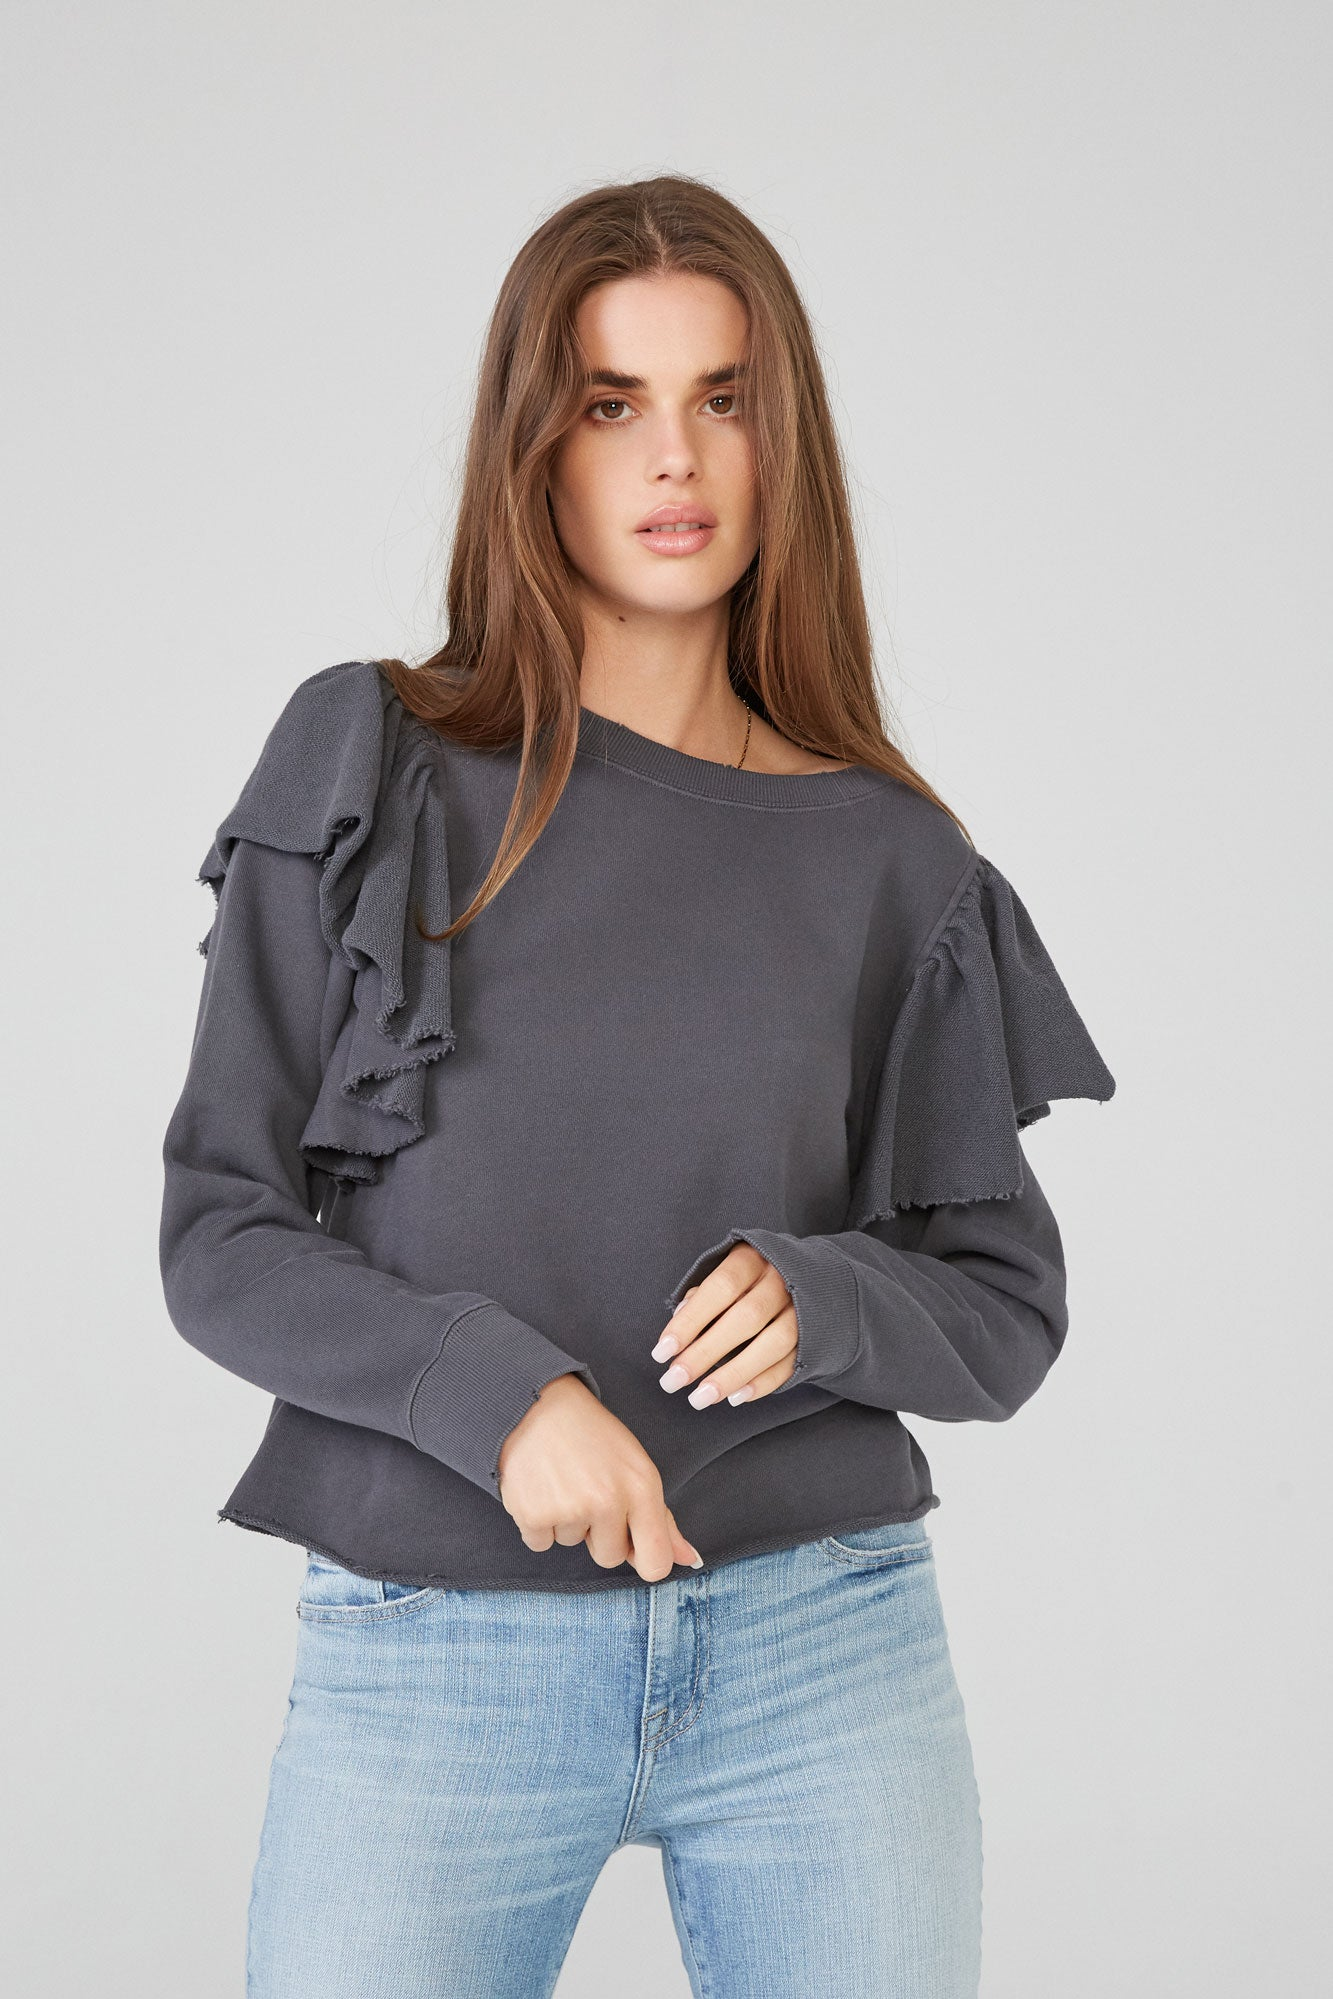 Peyton Long Sleeve Ruffle Sweatshirt - Anchor